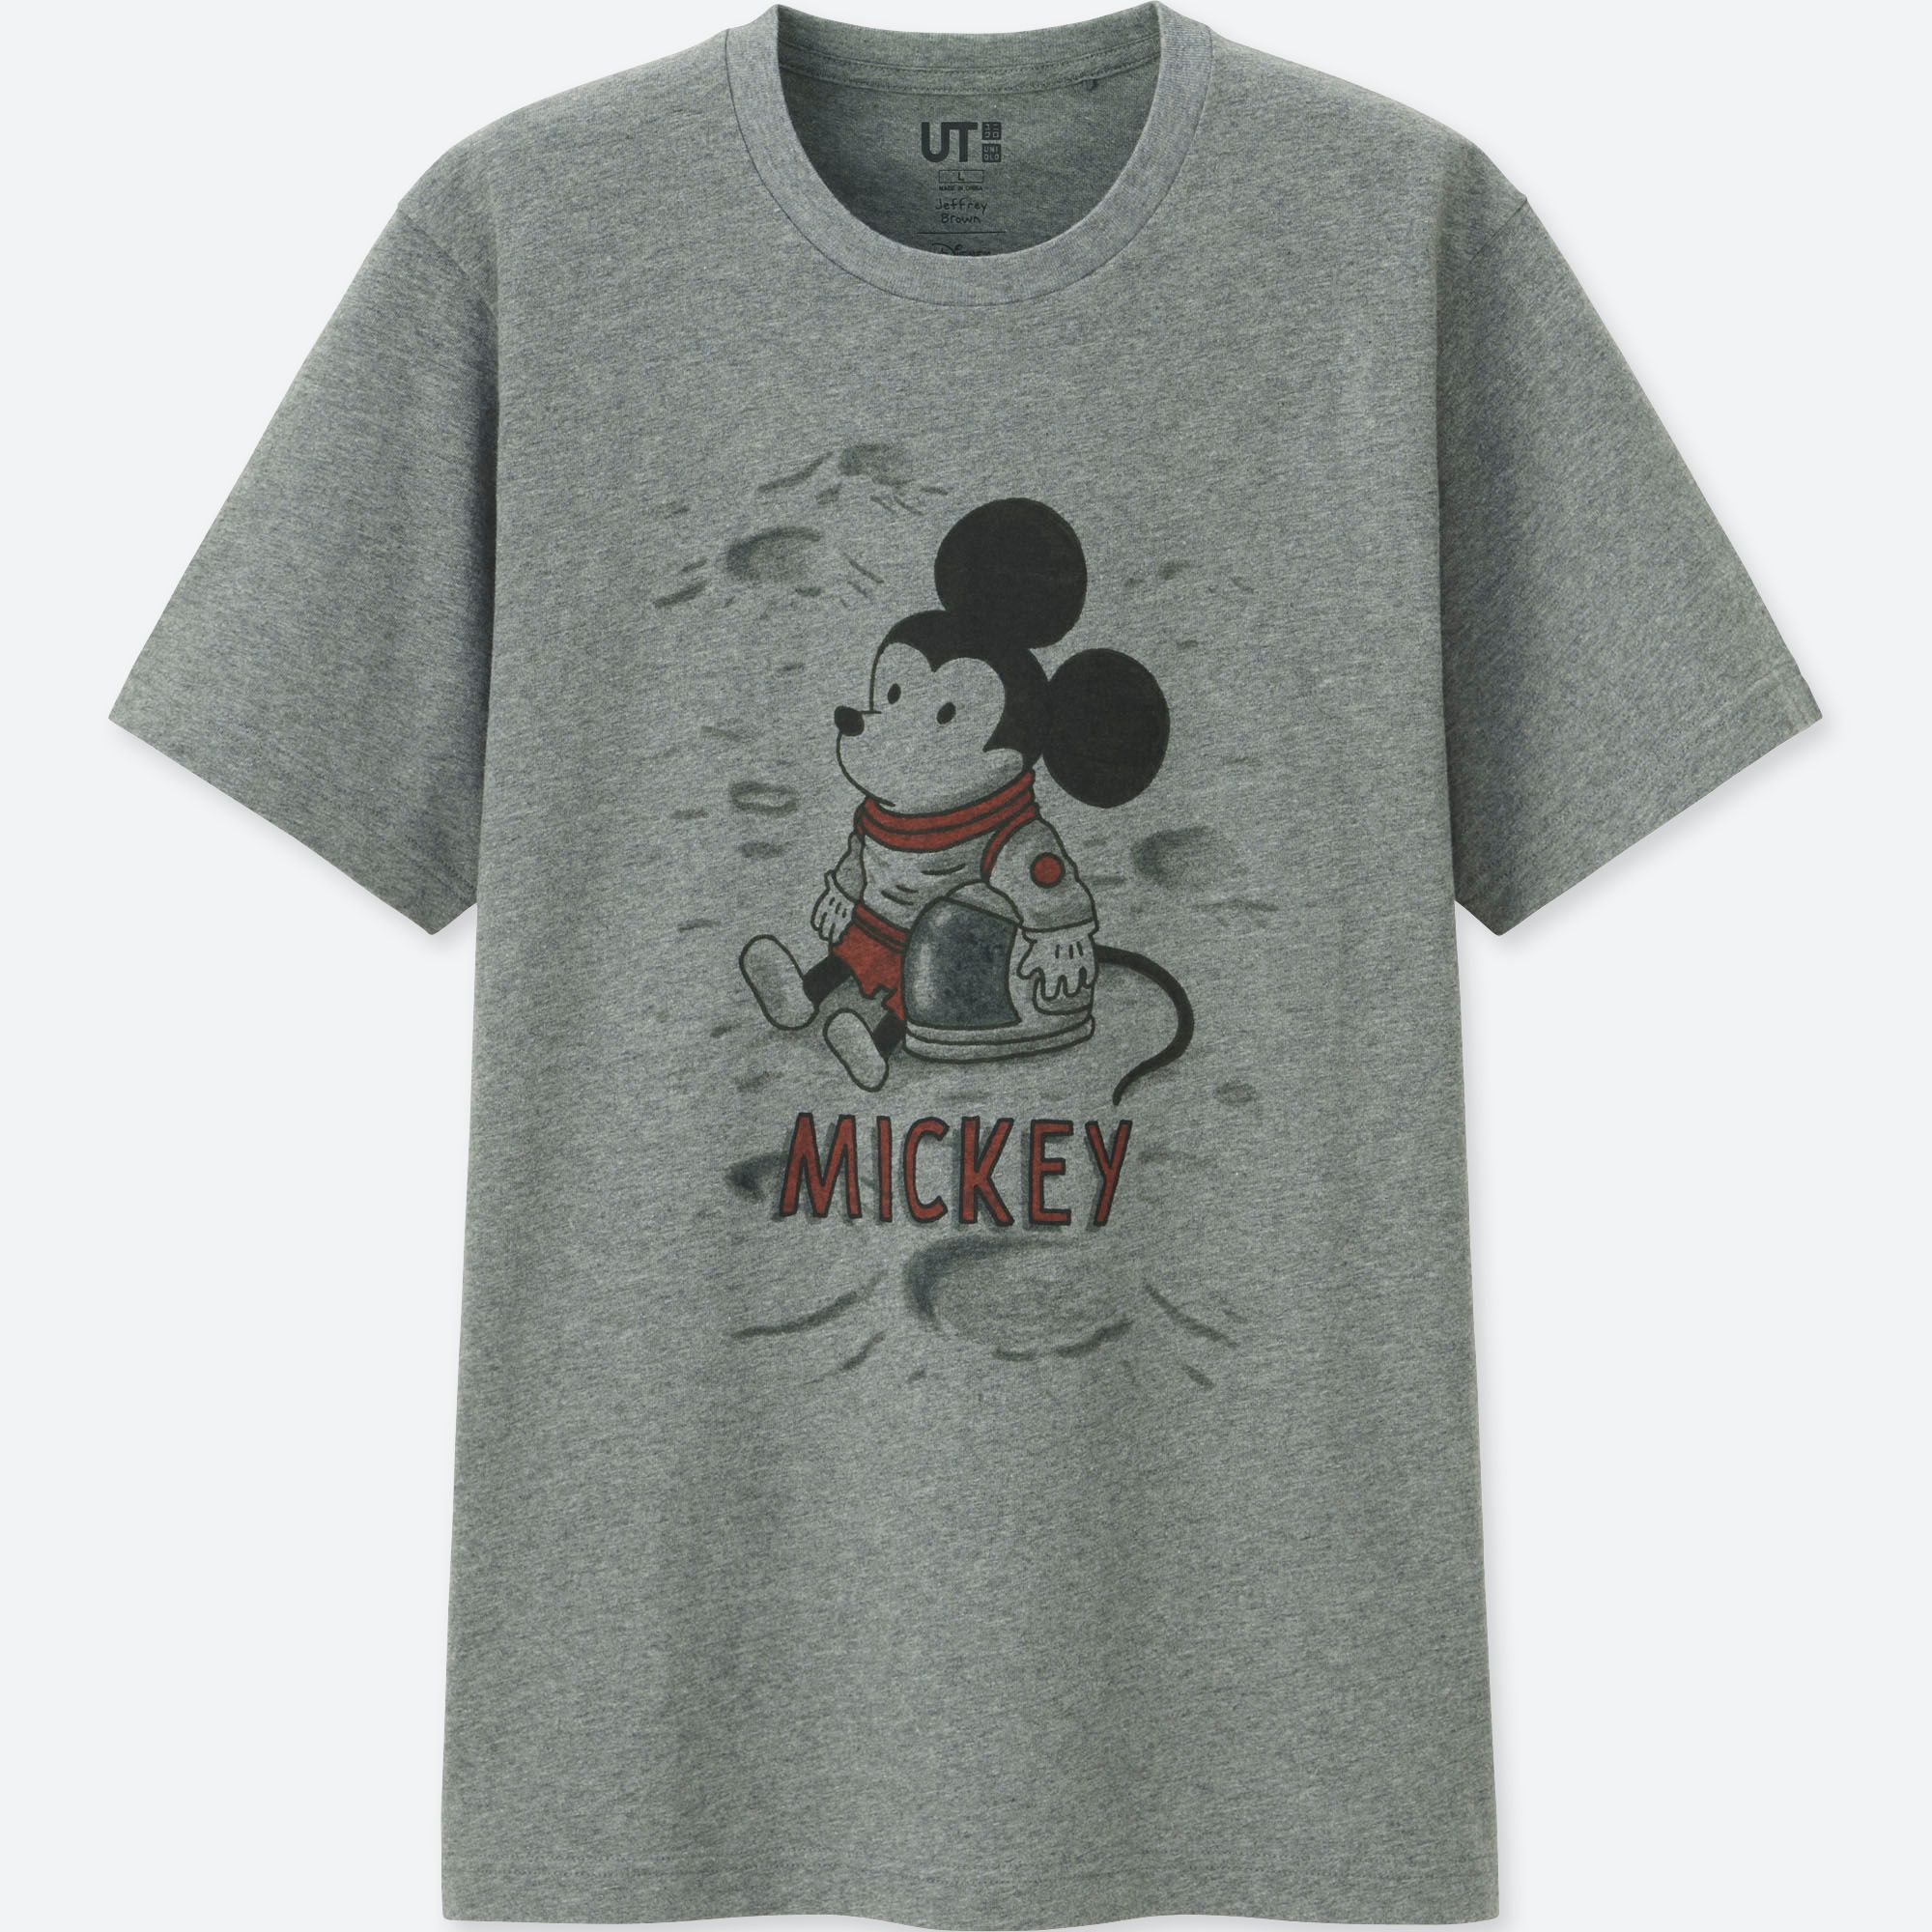 Mickey Art is the Newest and Coolest Mickey Mouse Line from UNIQLO